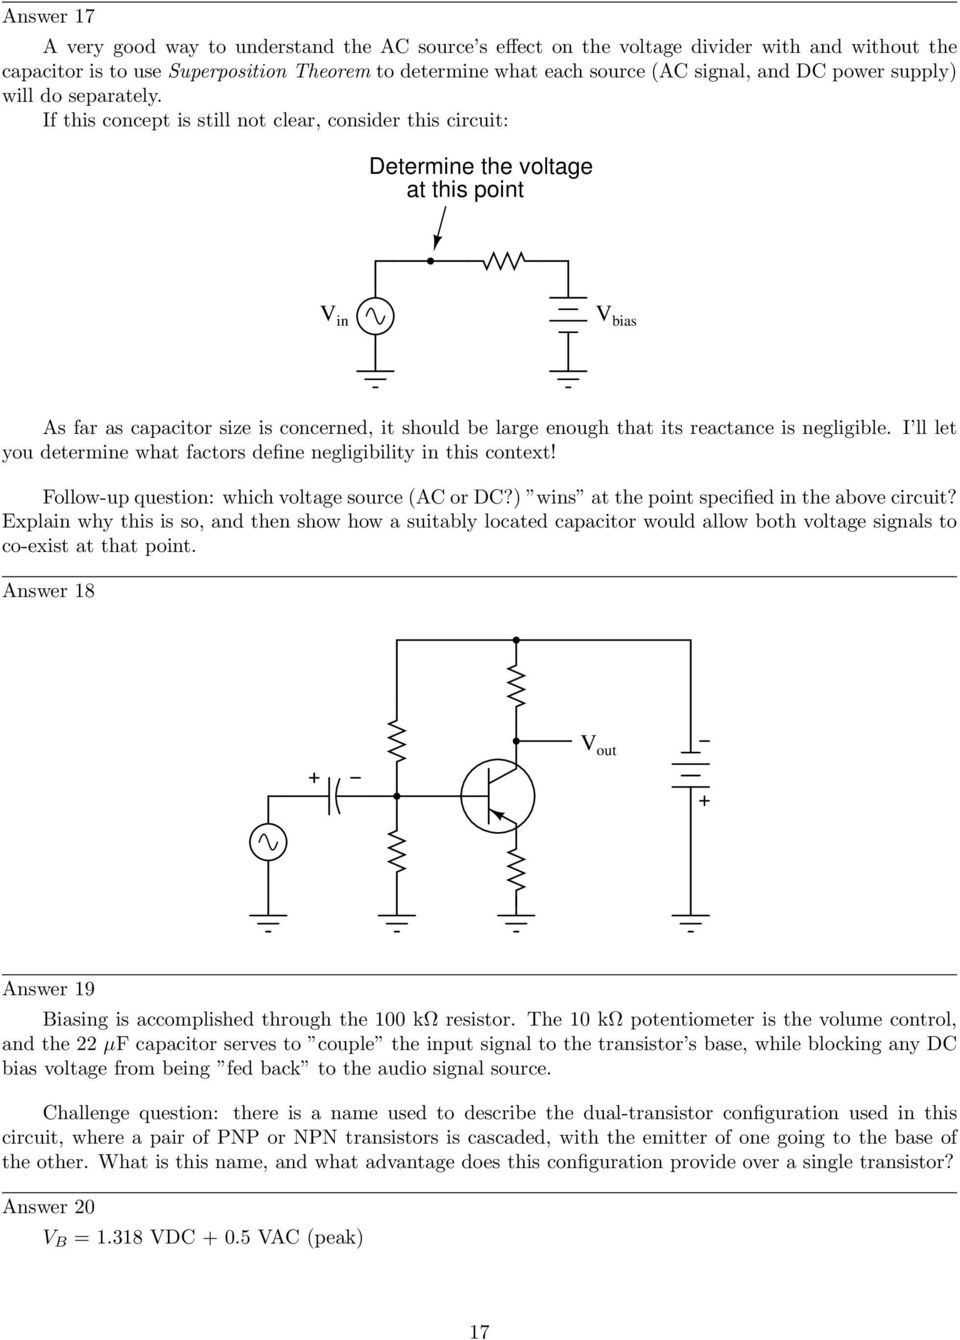 Bipolar Transistor Biasing Circuits Pdf Diagram B A Shows An Npn Which Is Often Used As If This Concept Still Not Clear Consider Circuit Determine The Voltage At